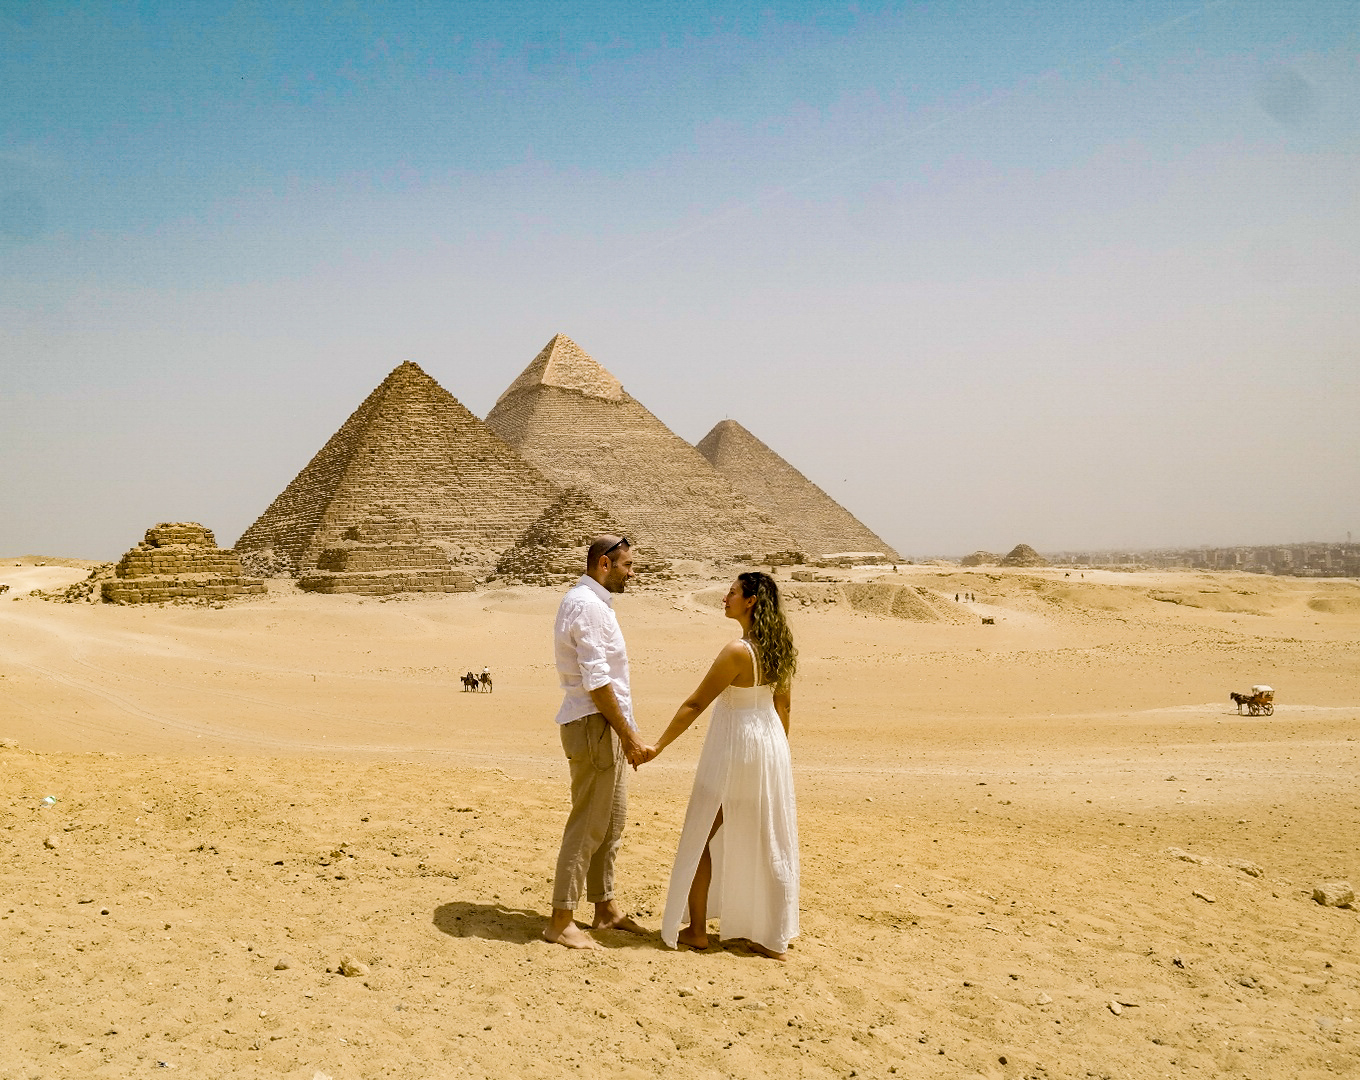 best egypt travel guide cairo pyramids aligned spot